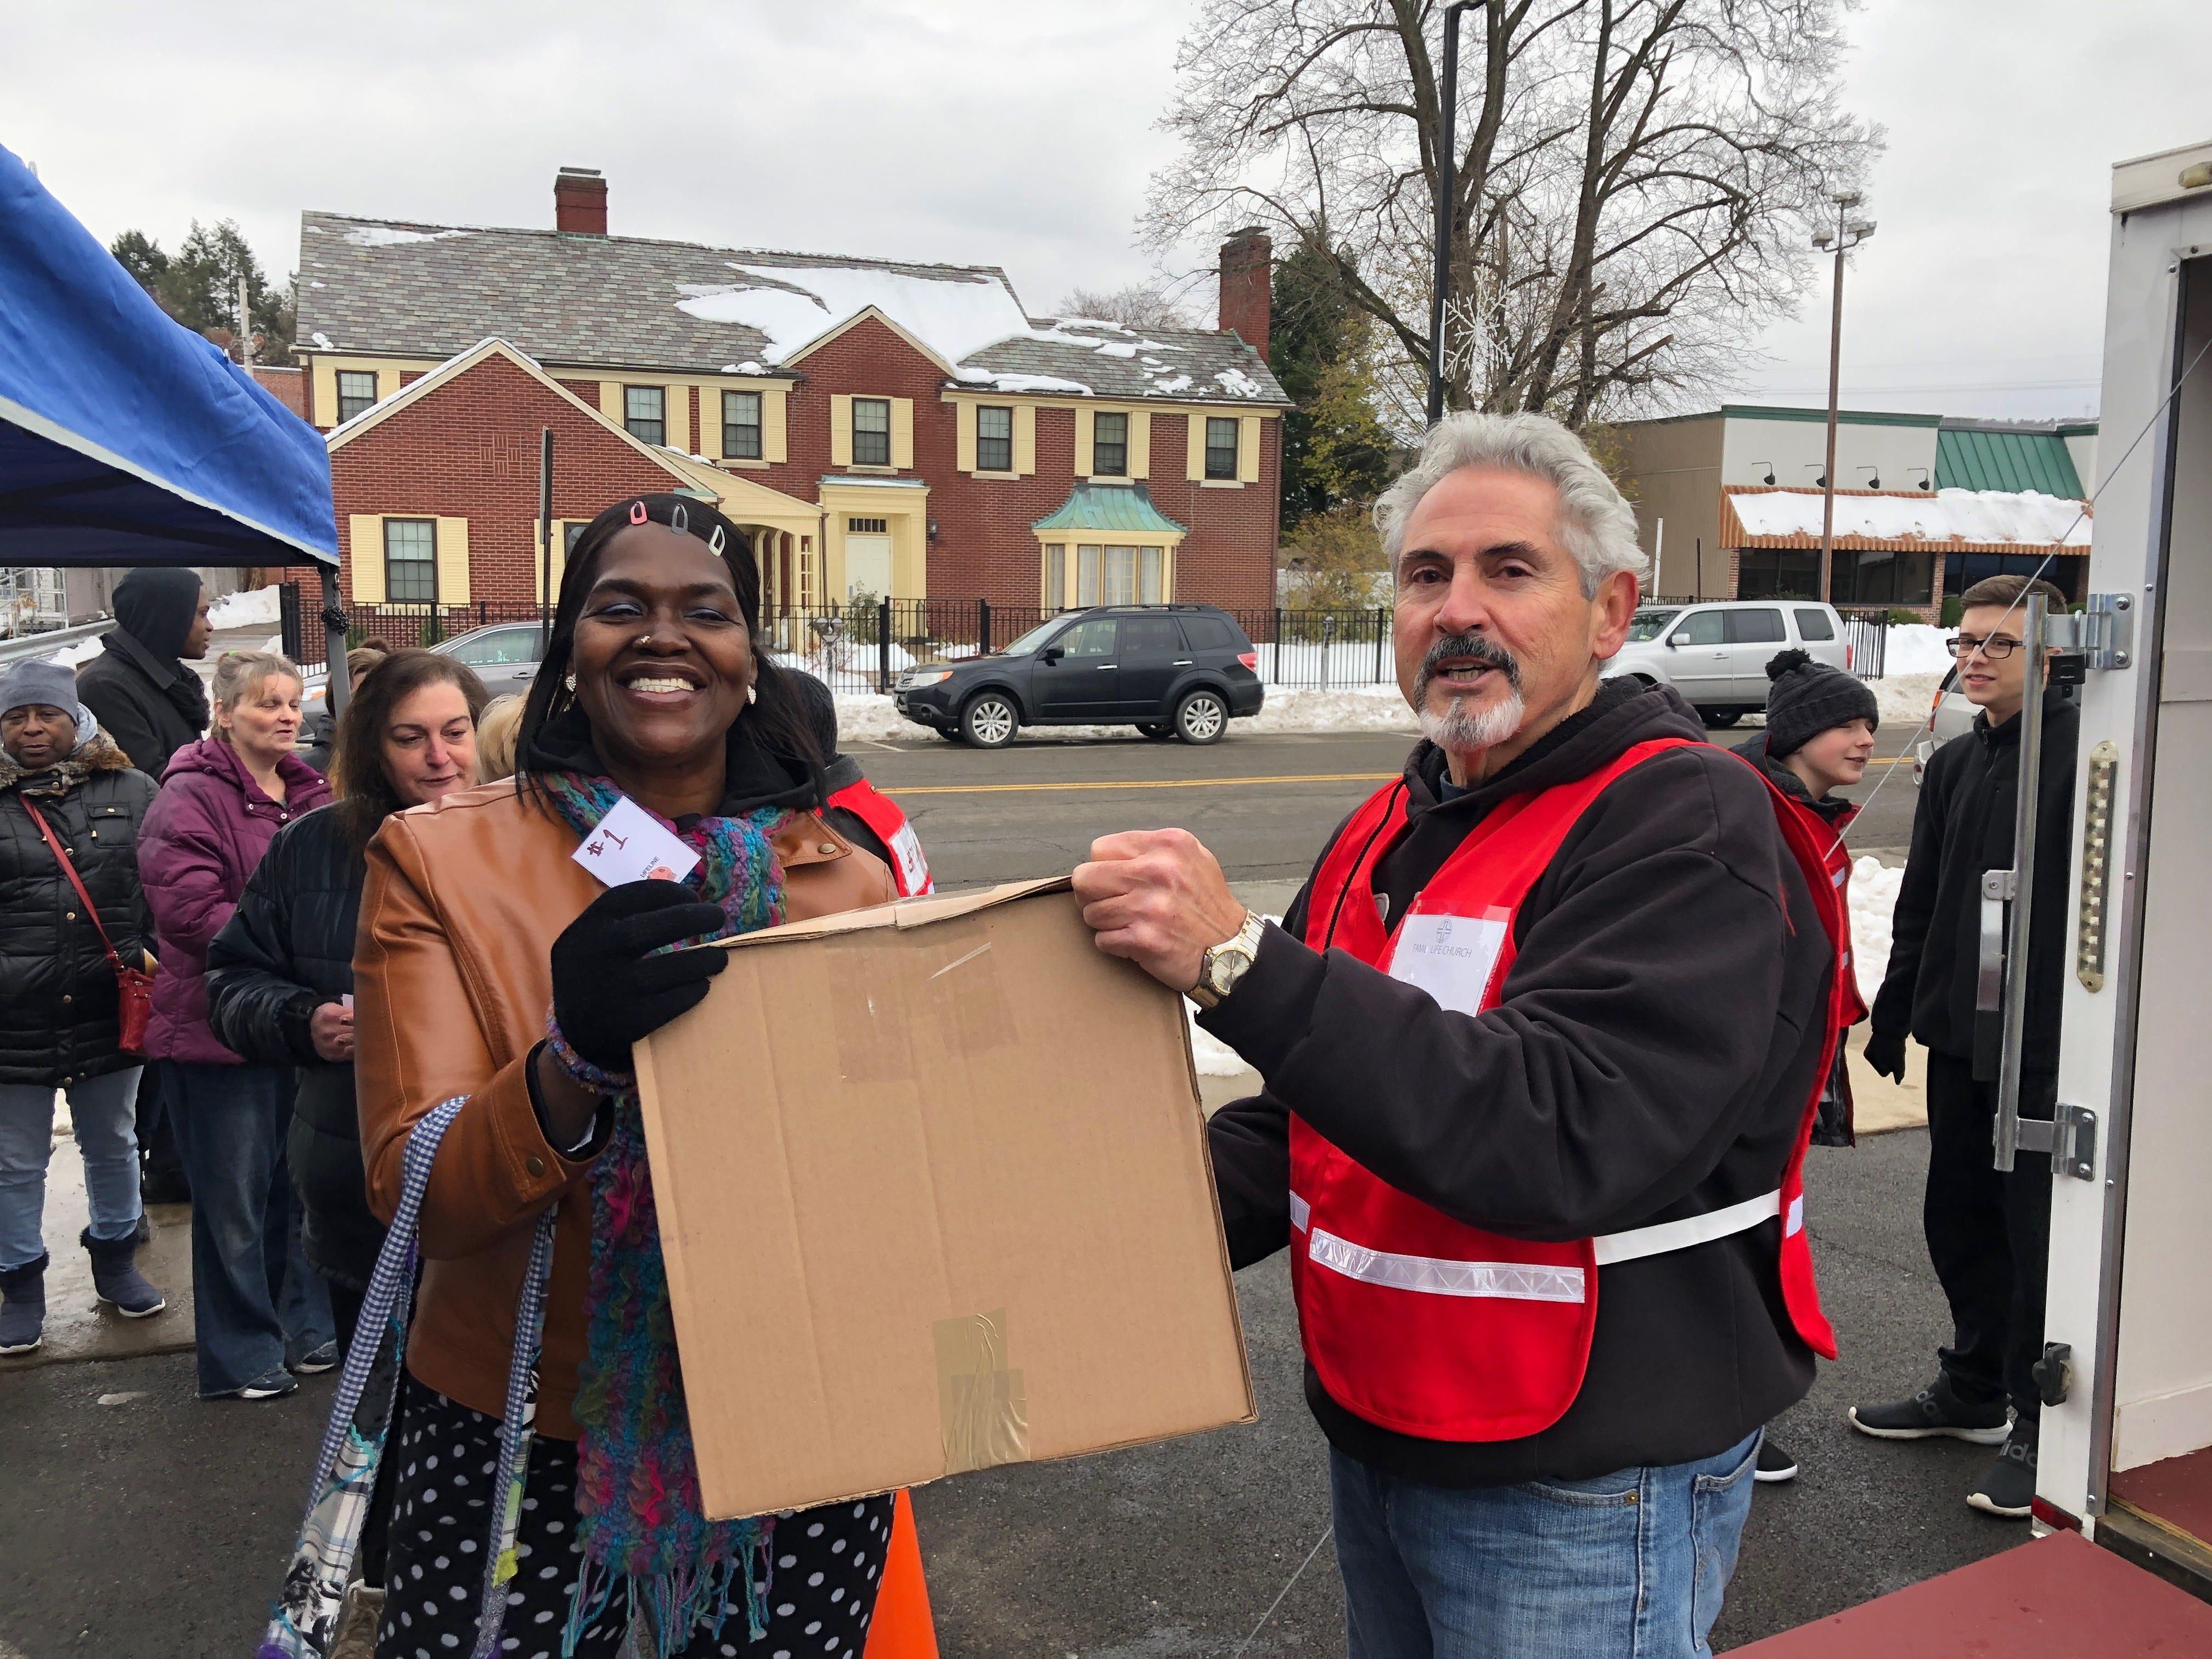 Family Life Church in Vestal distributed Thanksgiving meals to families in Endicott and Binghamton.